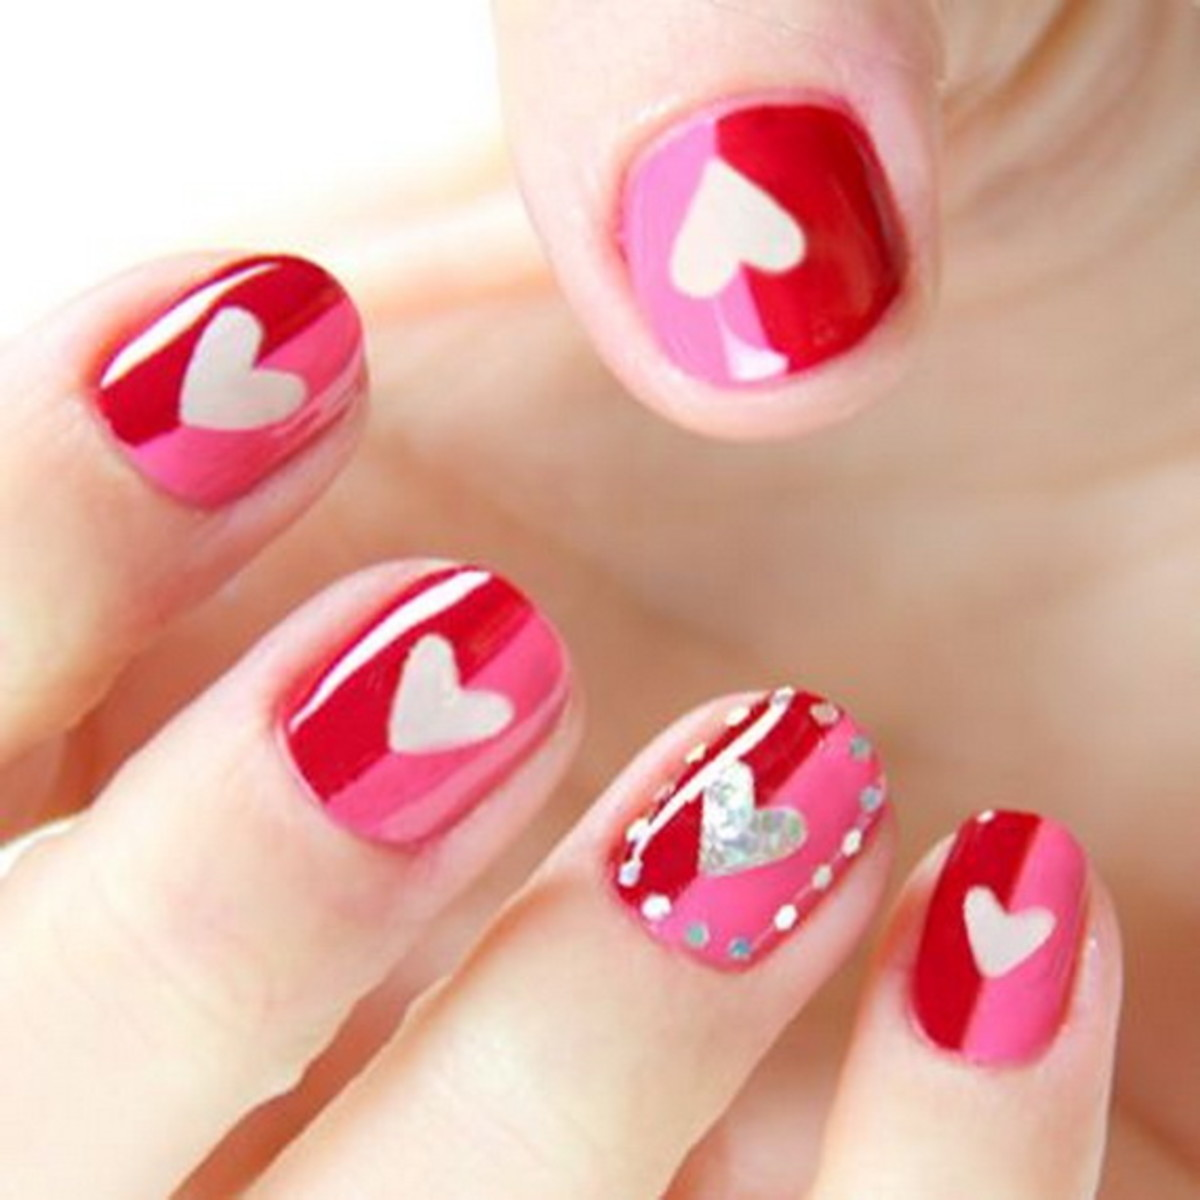 Red and pink heart nails